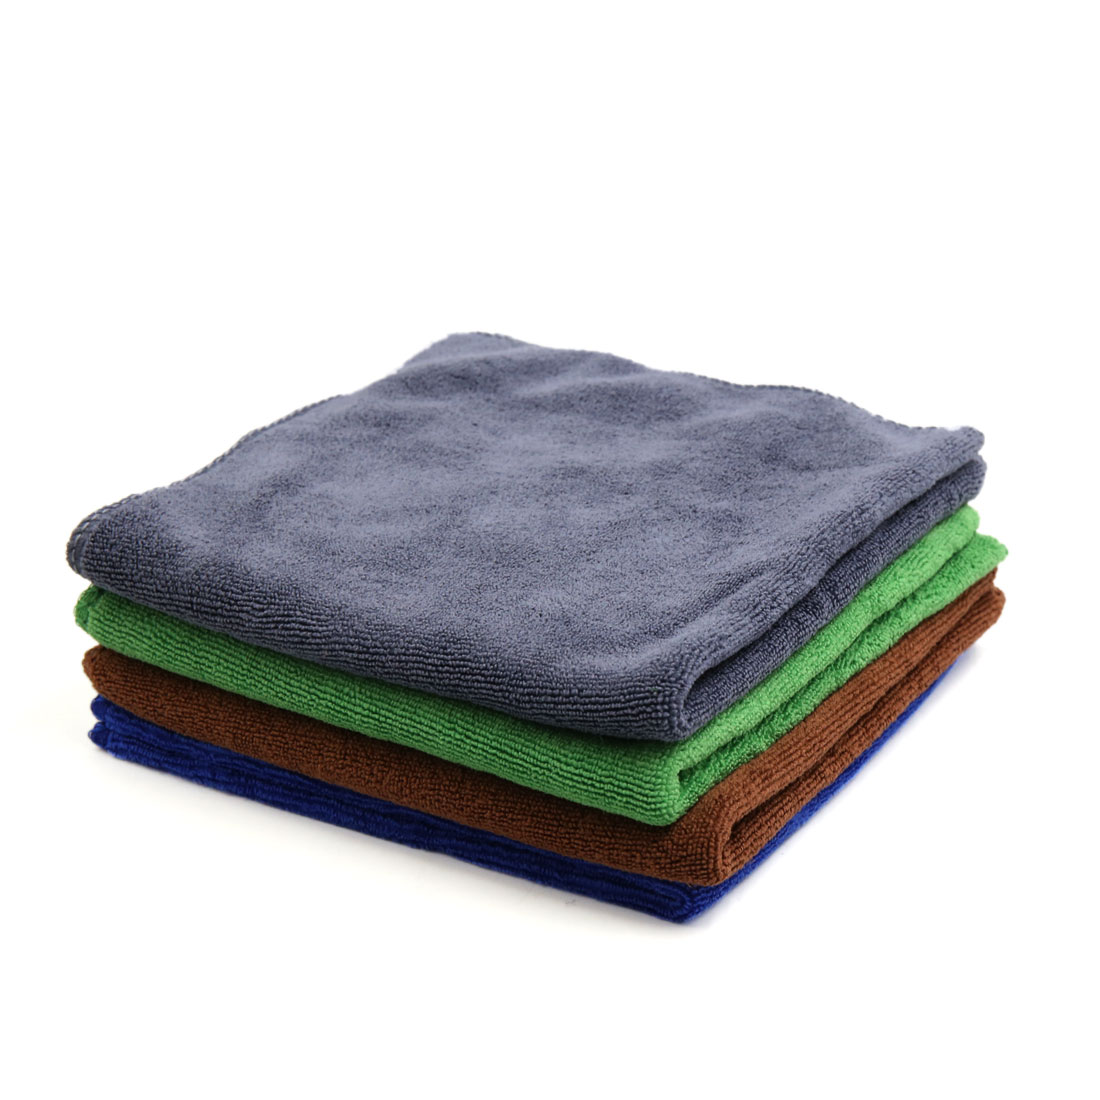 4 Pcs High Absorbing Car Clean Cloth Towel No-scratched for Car Vehicle Multi-colour